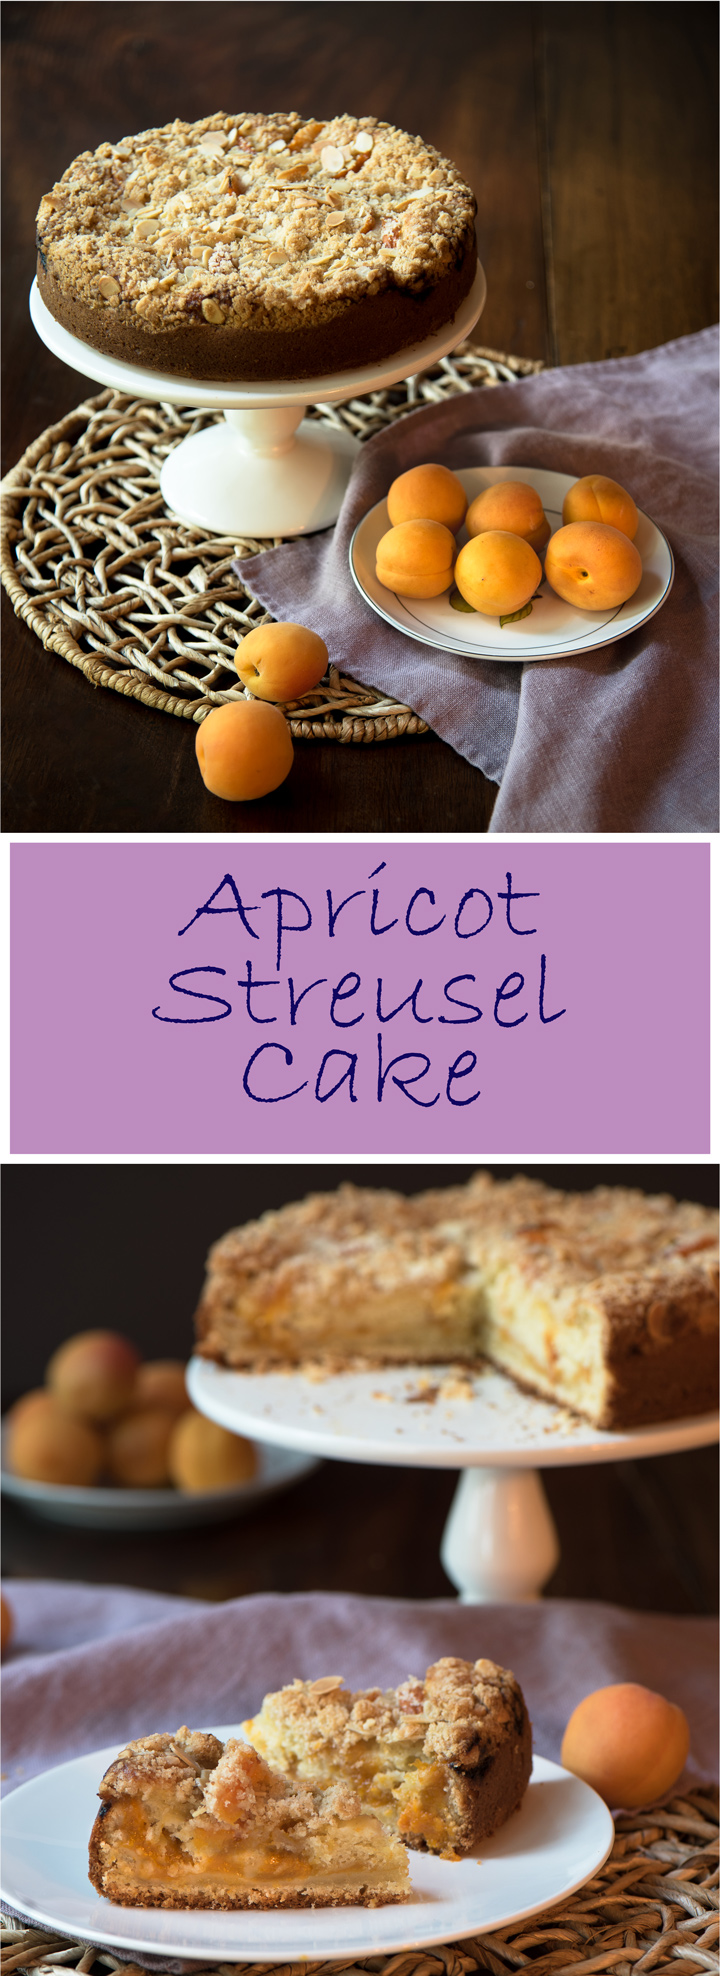 Apricot Streusel Cake. Apricot Streusel Cake is one of those back pocket dessert recipes that everyone needs. It is easy to make and as relaxed as a long summer weekend.